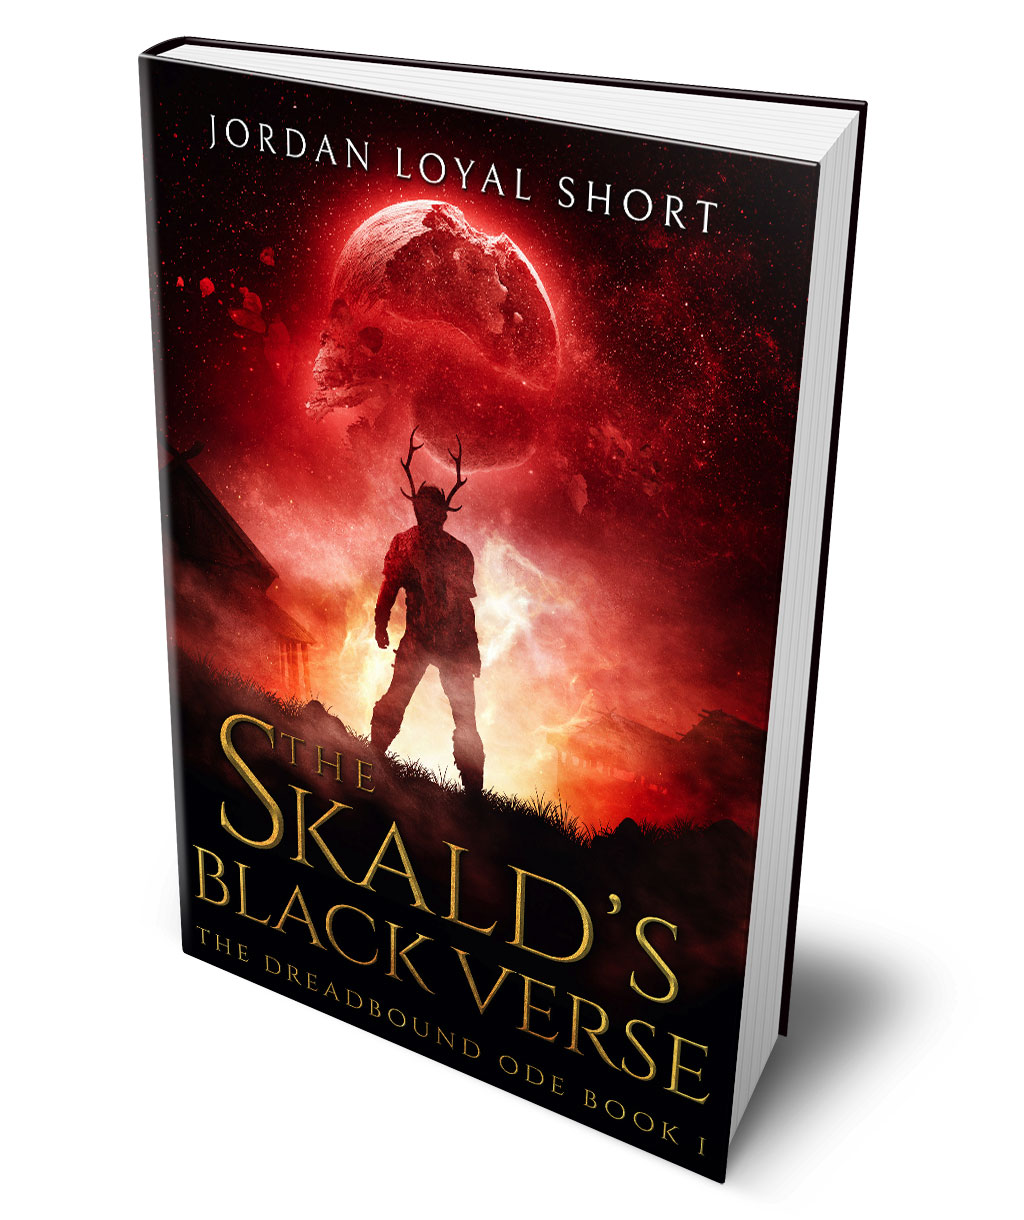 The Skald's Black Verse by Jordan Loyal Short cover